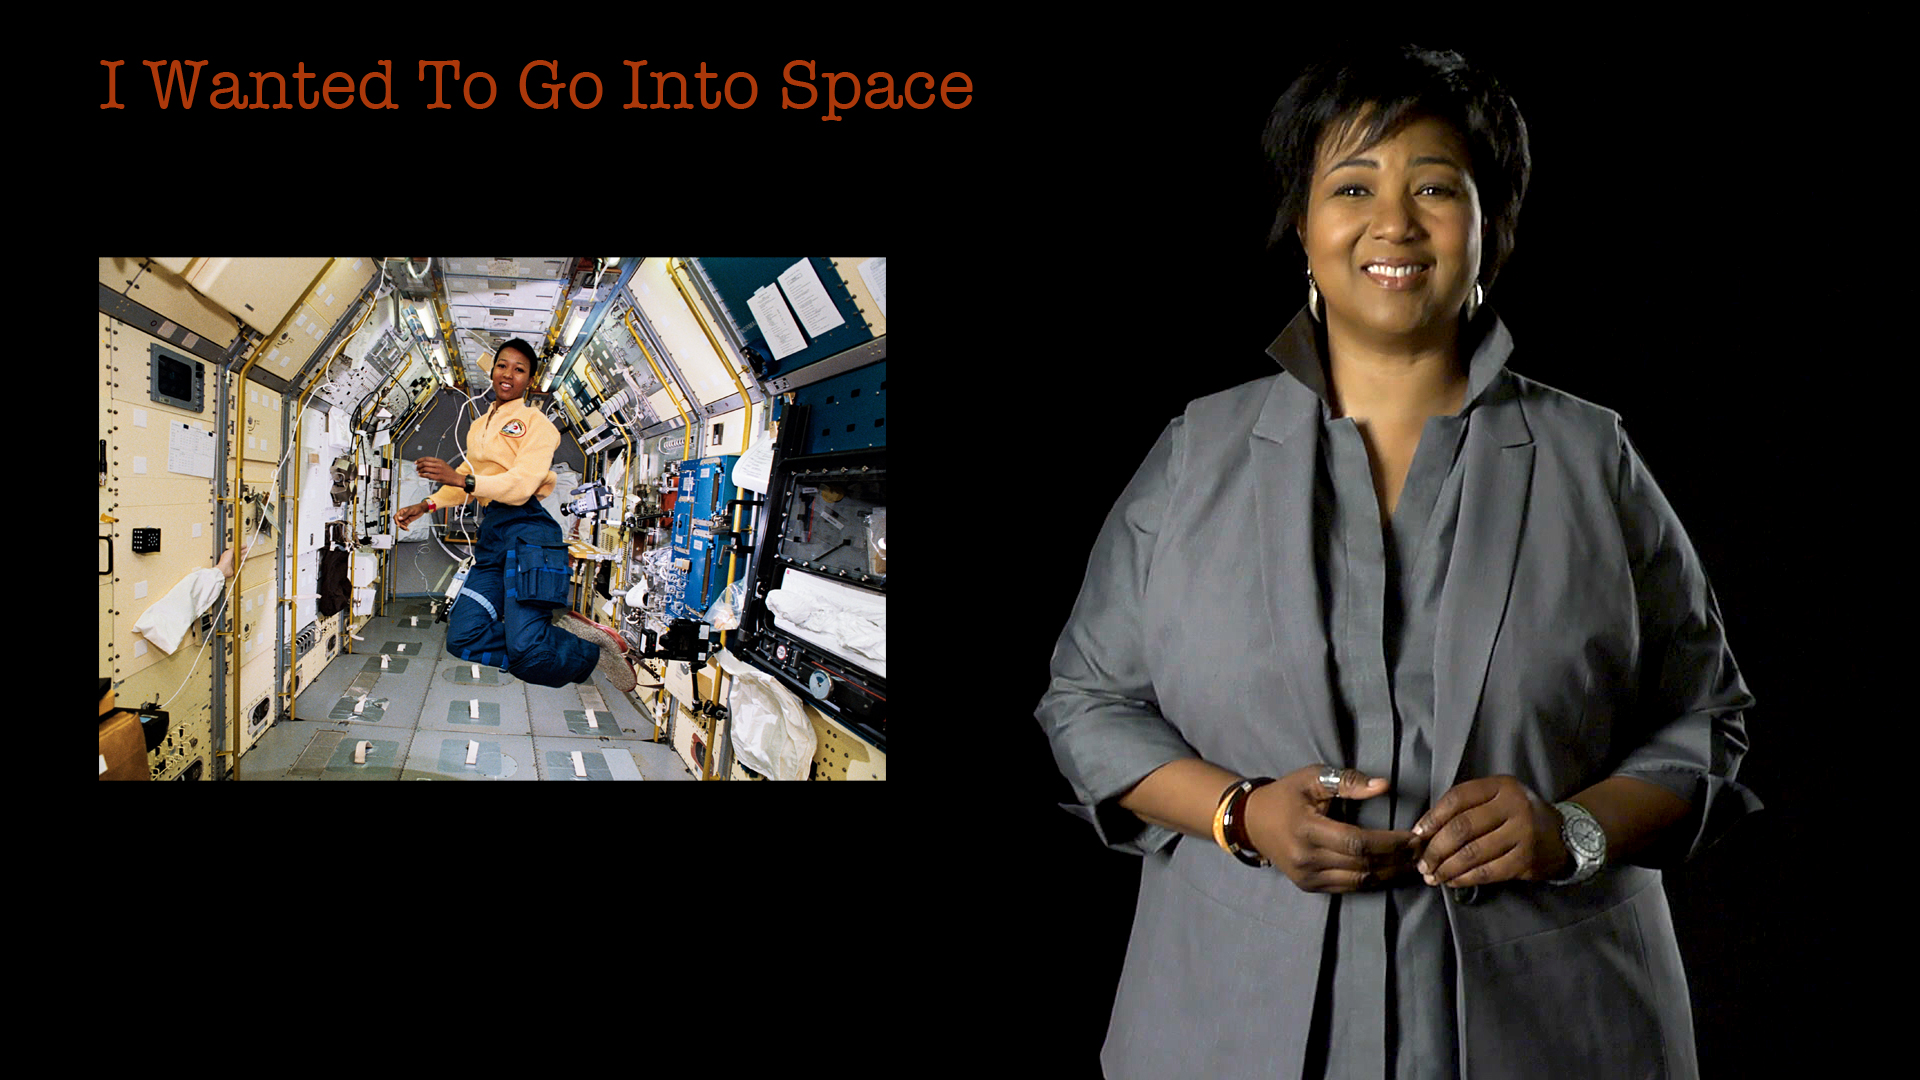 Mae Jemison: I Wanted To Go Into Space Hero